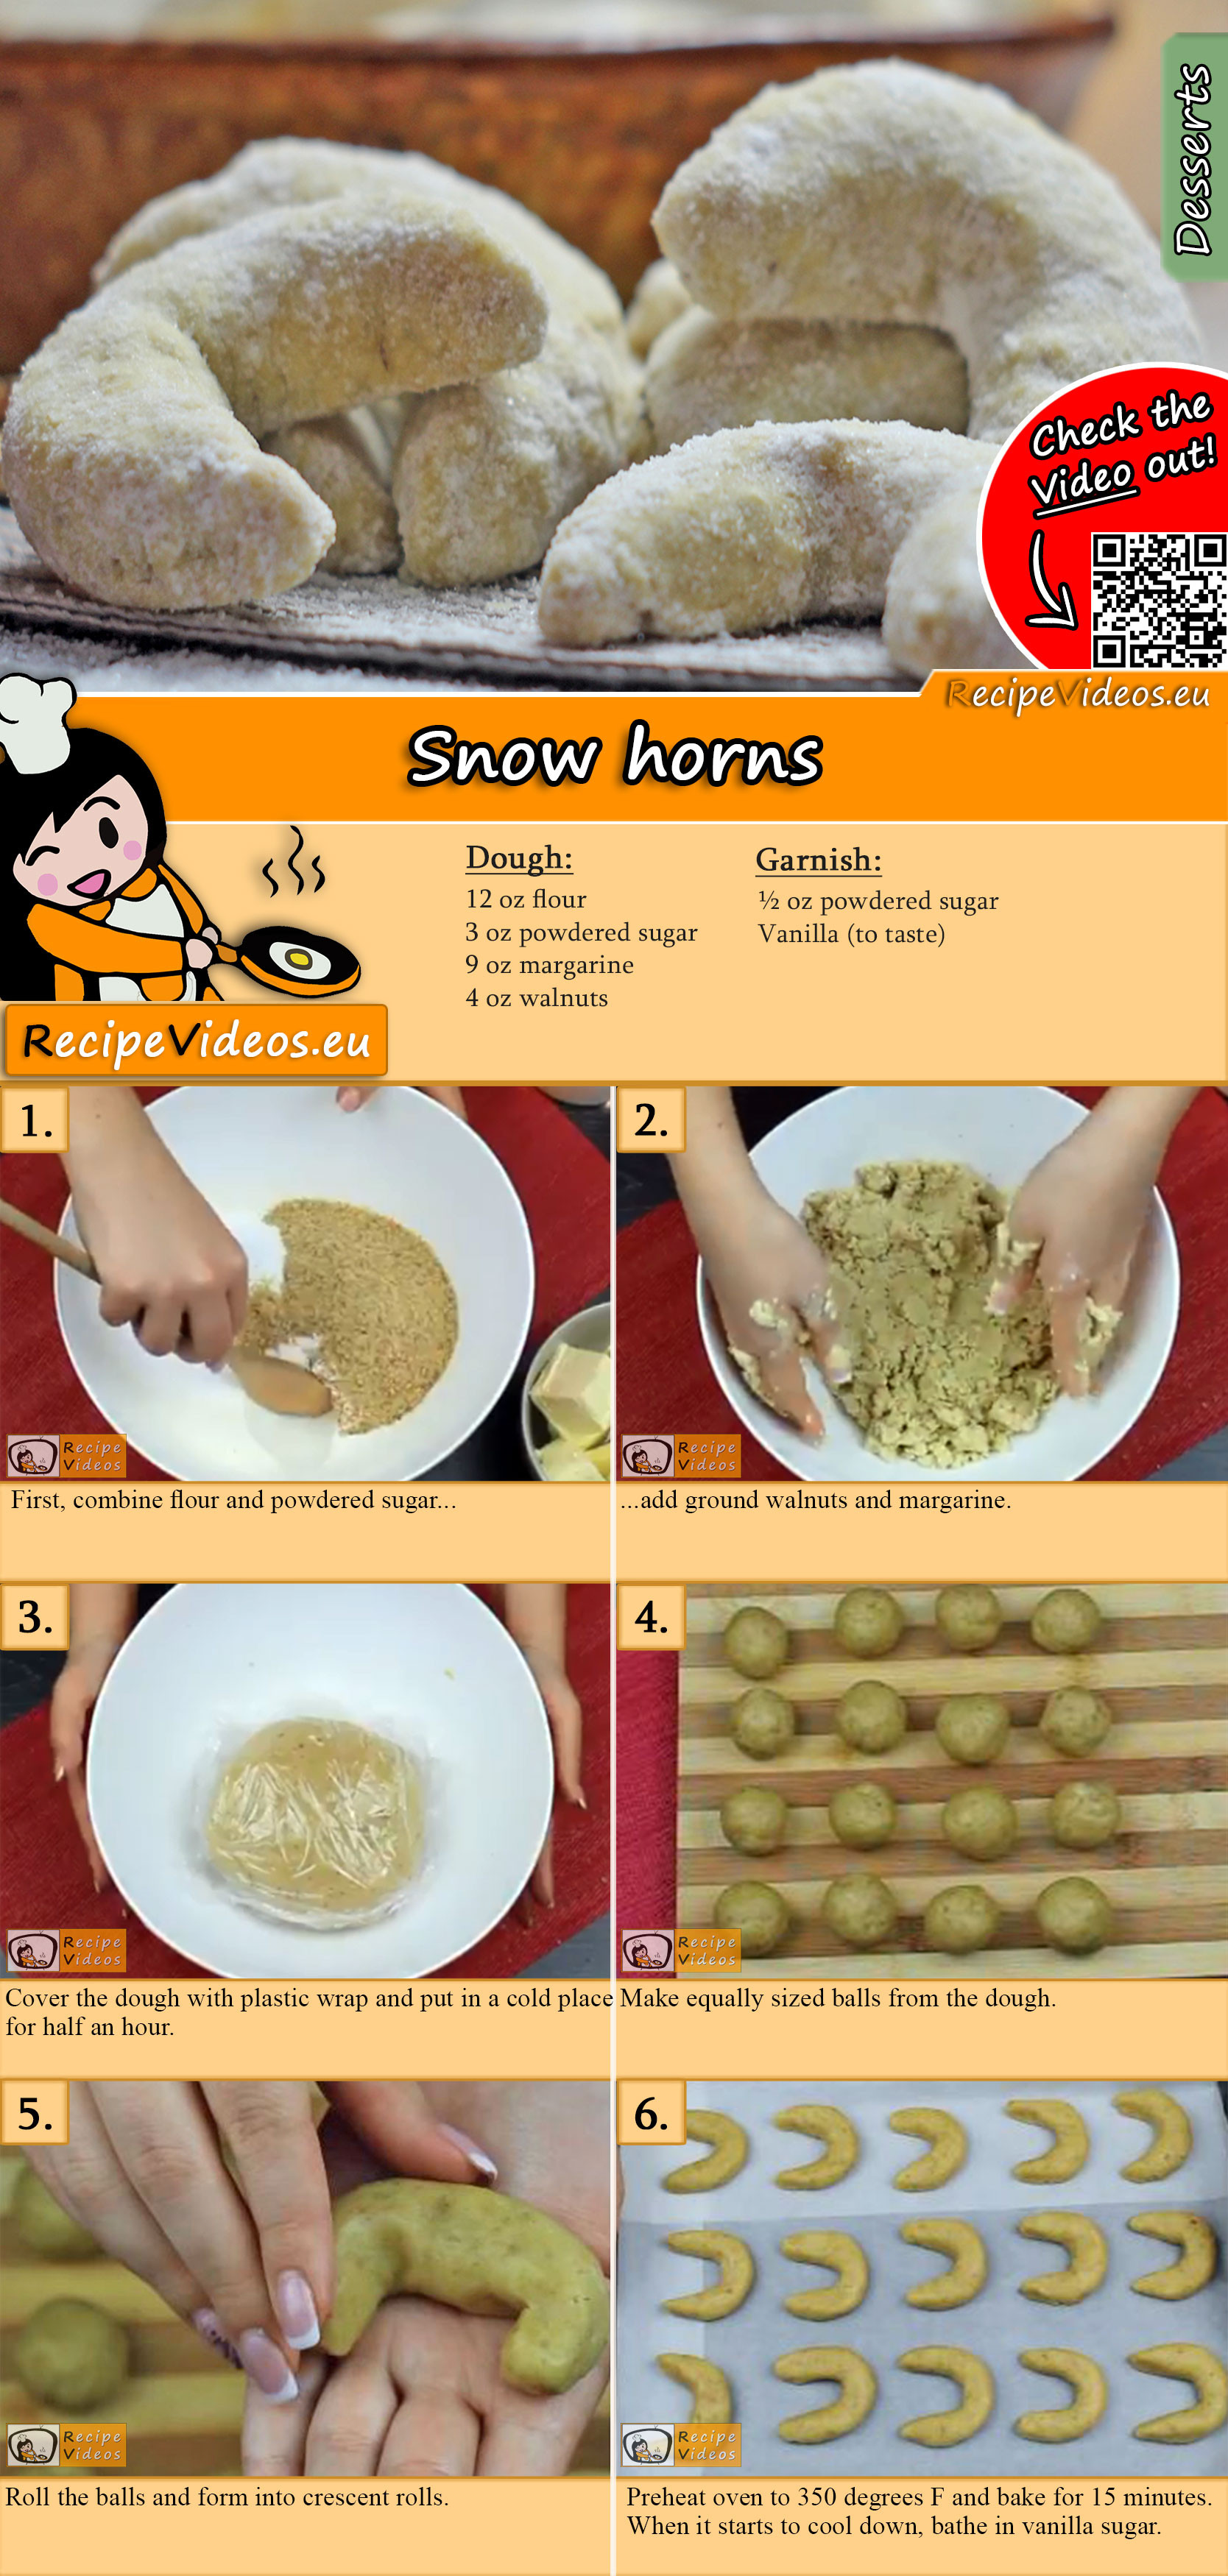 Snow horns recipe with video